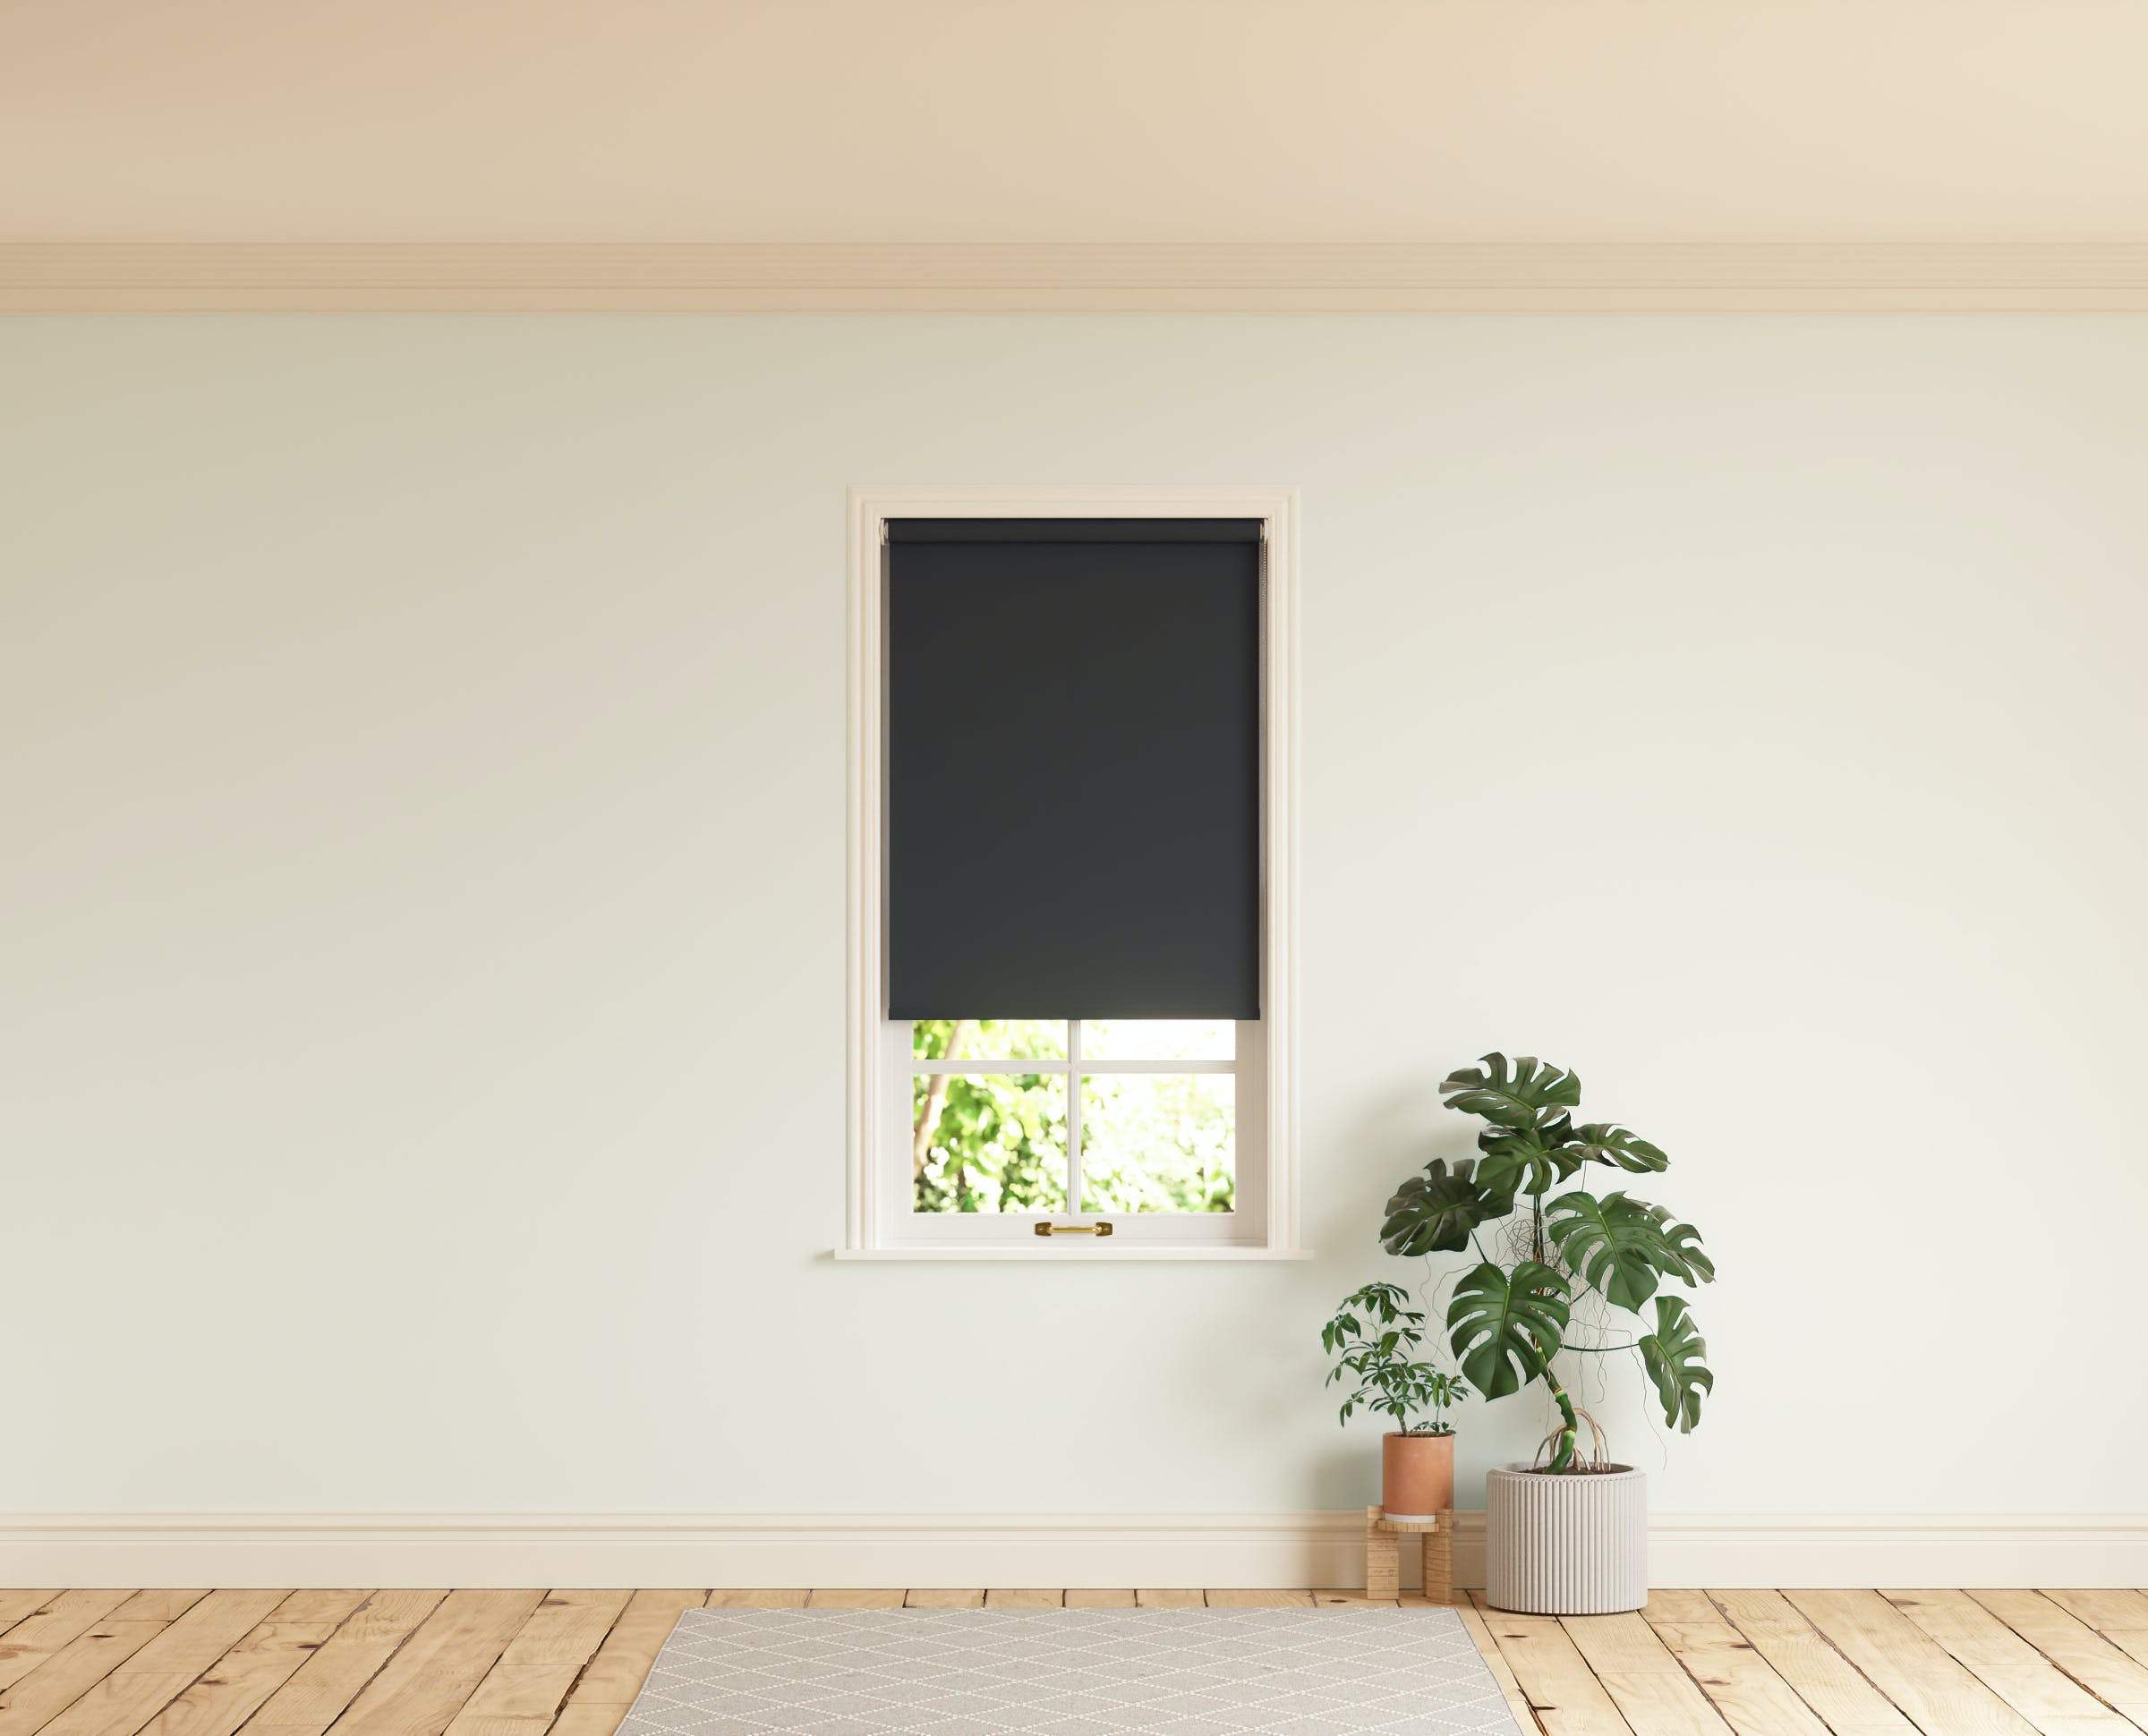 Room with walls painted in Lick White 02 and Black 02 roller blinds